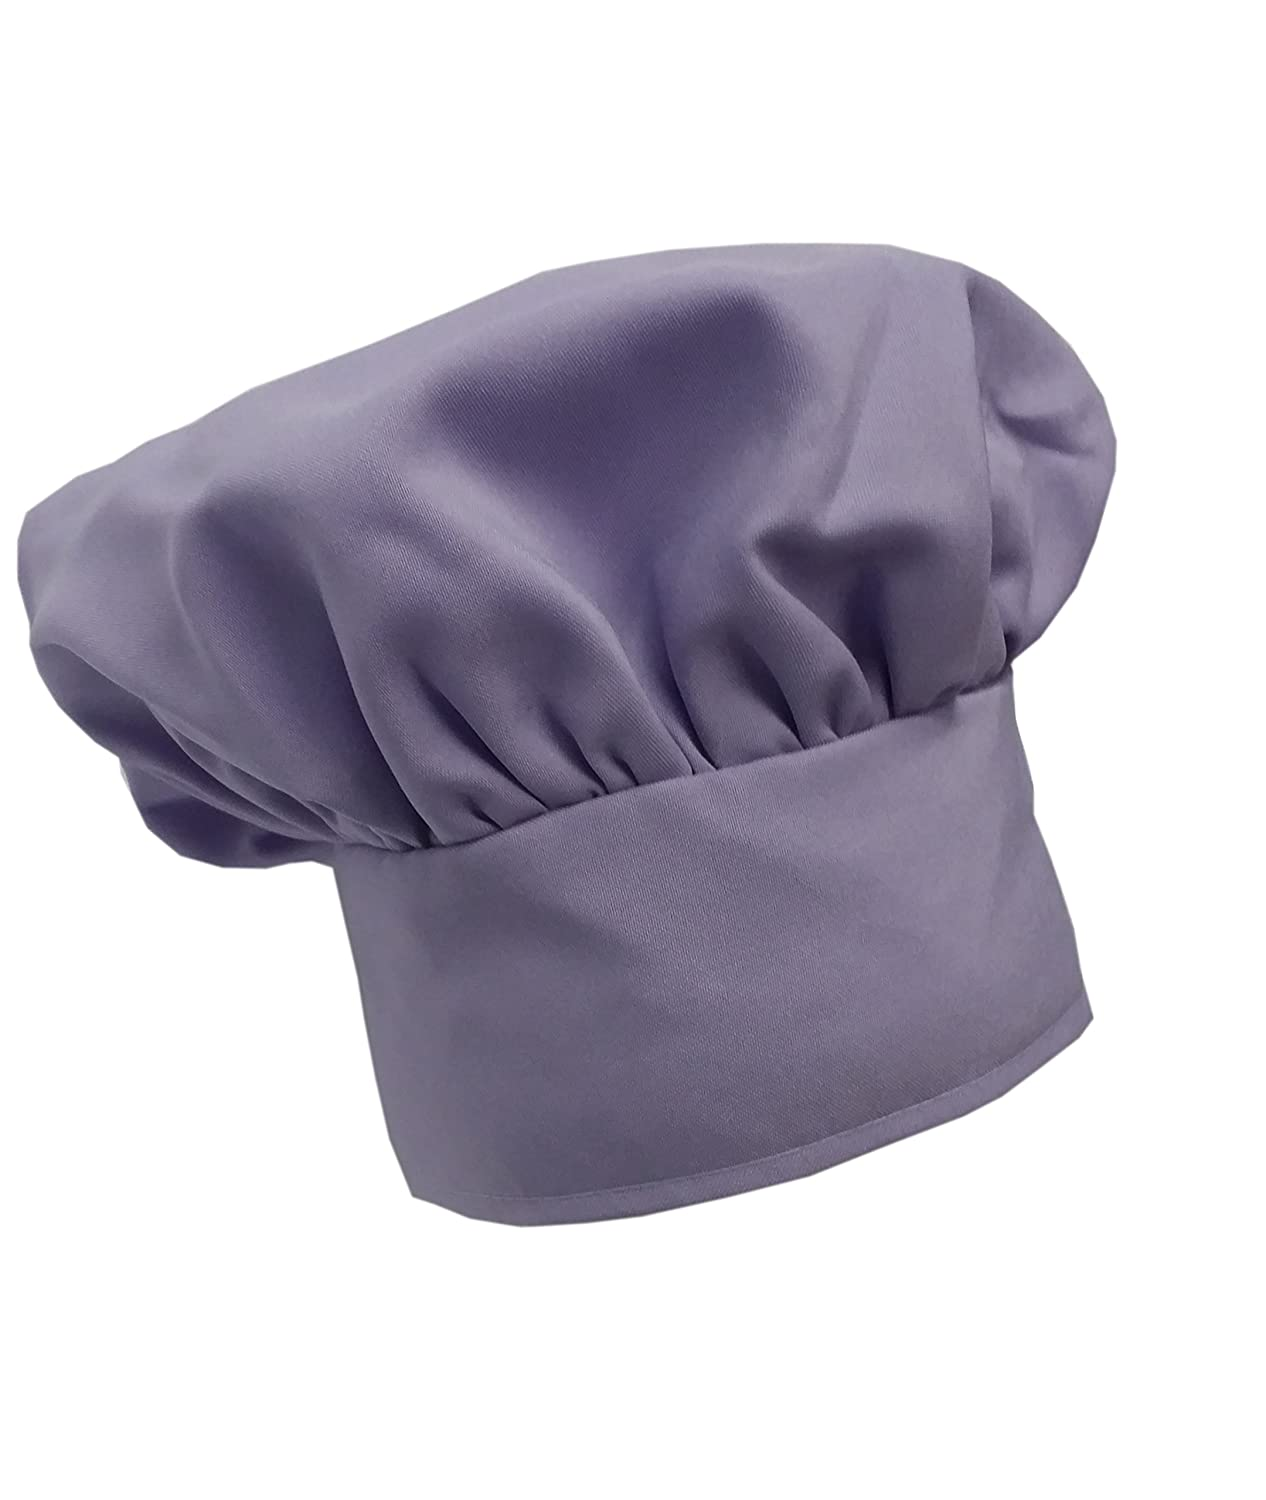 Chefskin Chef Mushroom Hat Adults Lavender Lilac Light Purple Adjustable CHEFSKIN MUSHROOM HAT